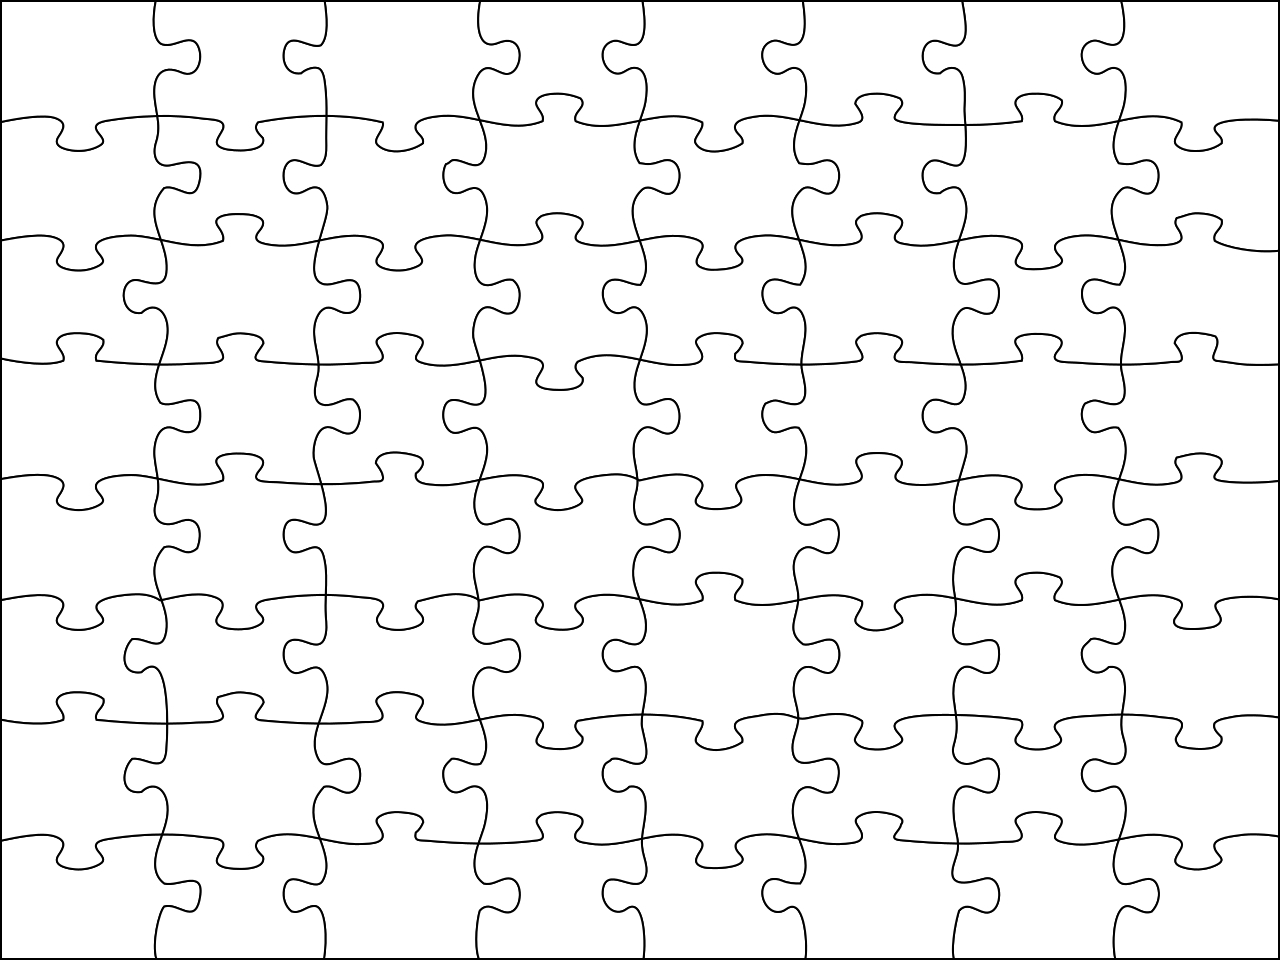 Jigsaw Puzzle Maker Free Printable | Free Printables - Printable Jigsaw Puzzle Maker Software